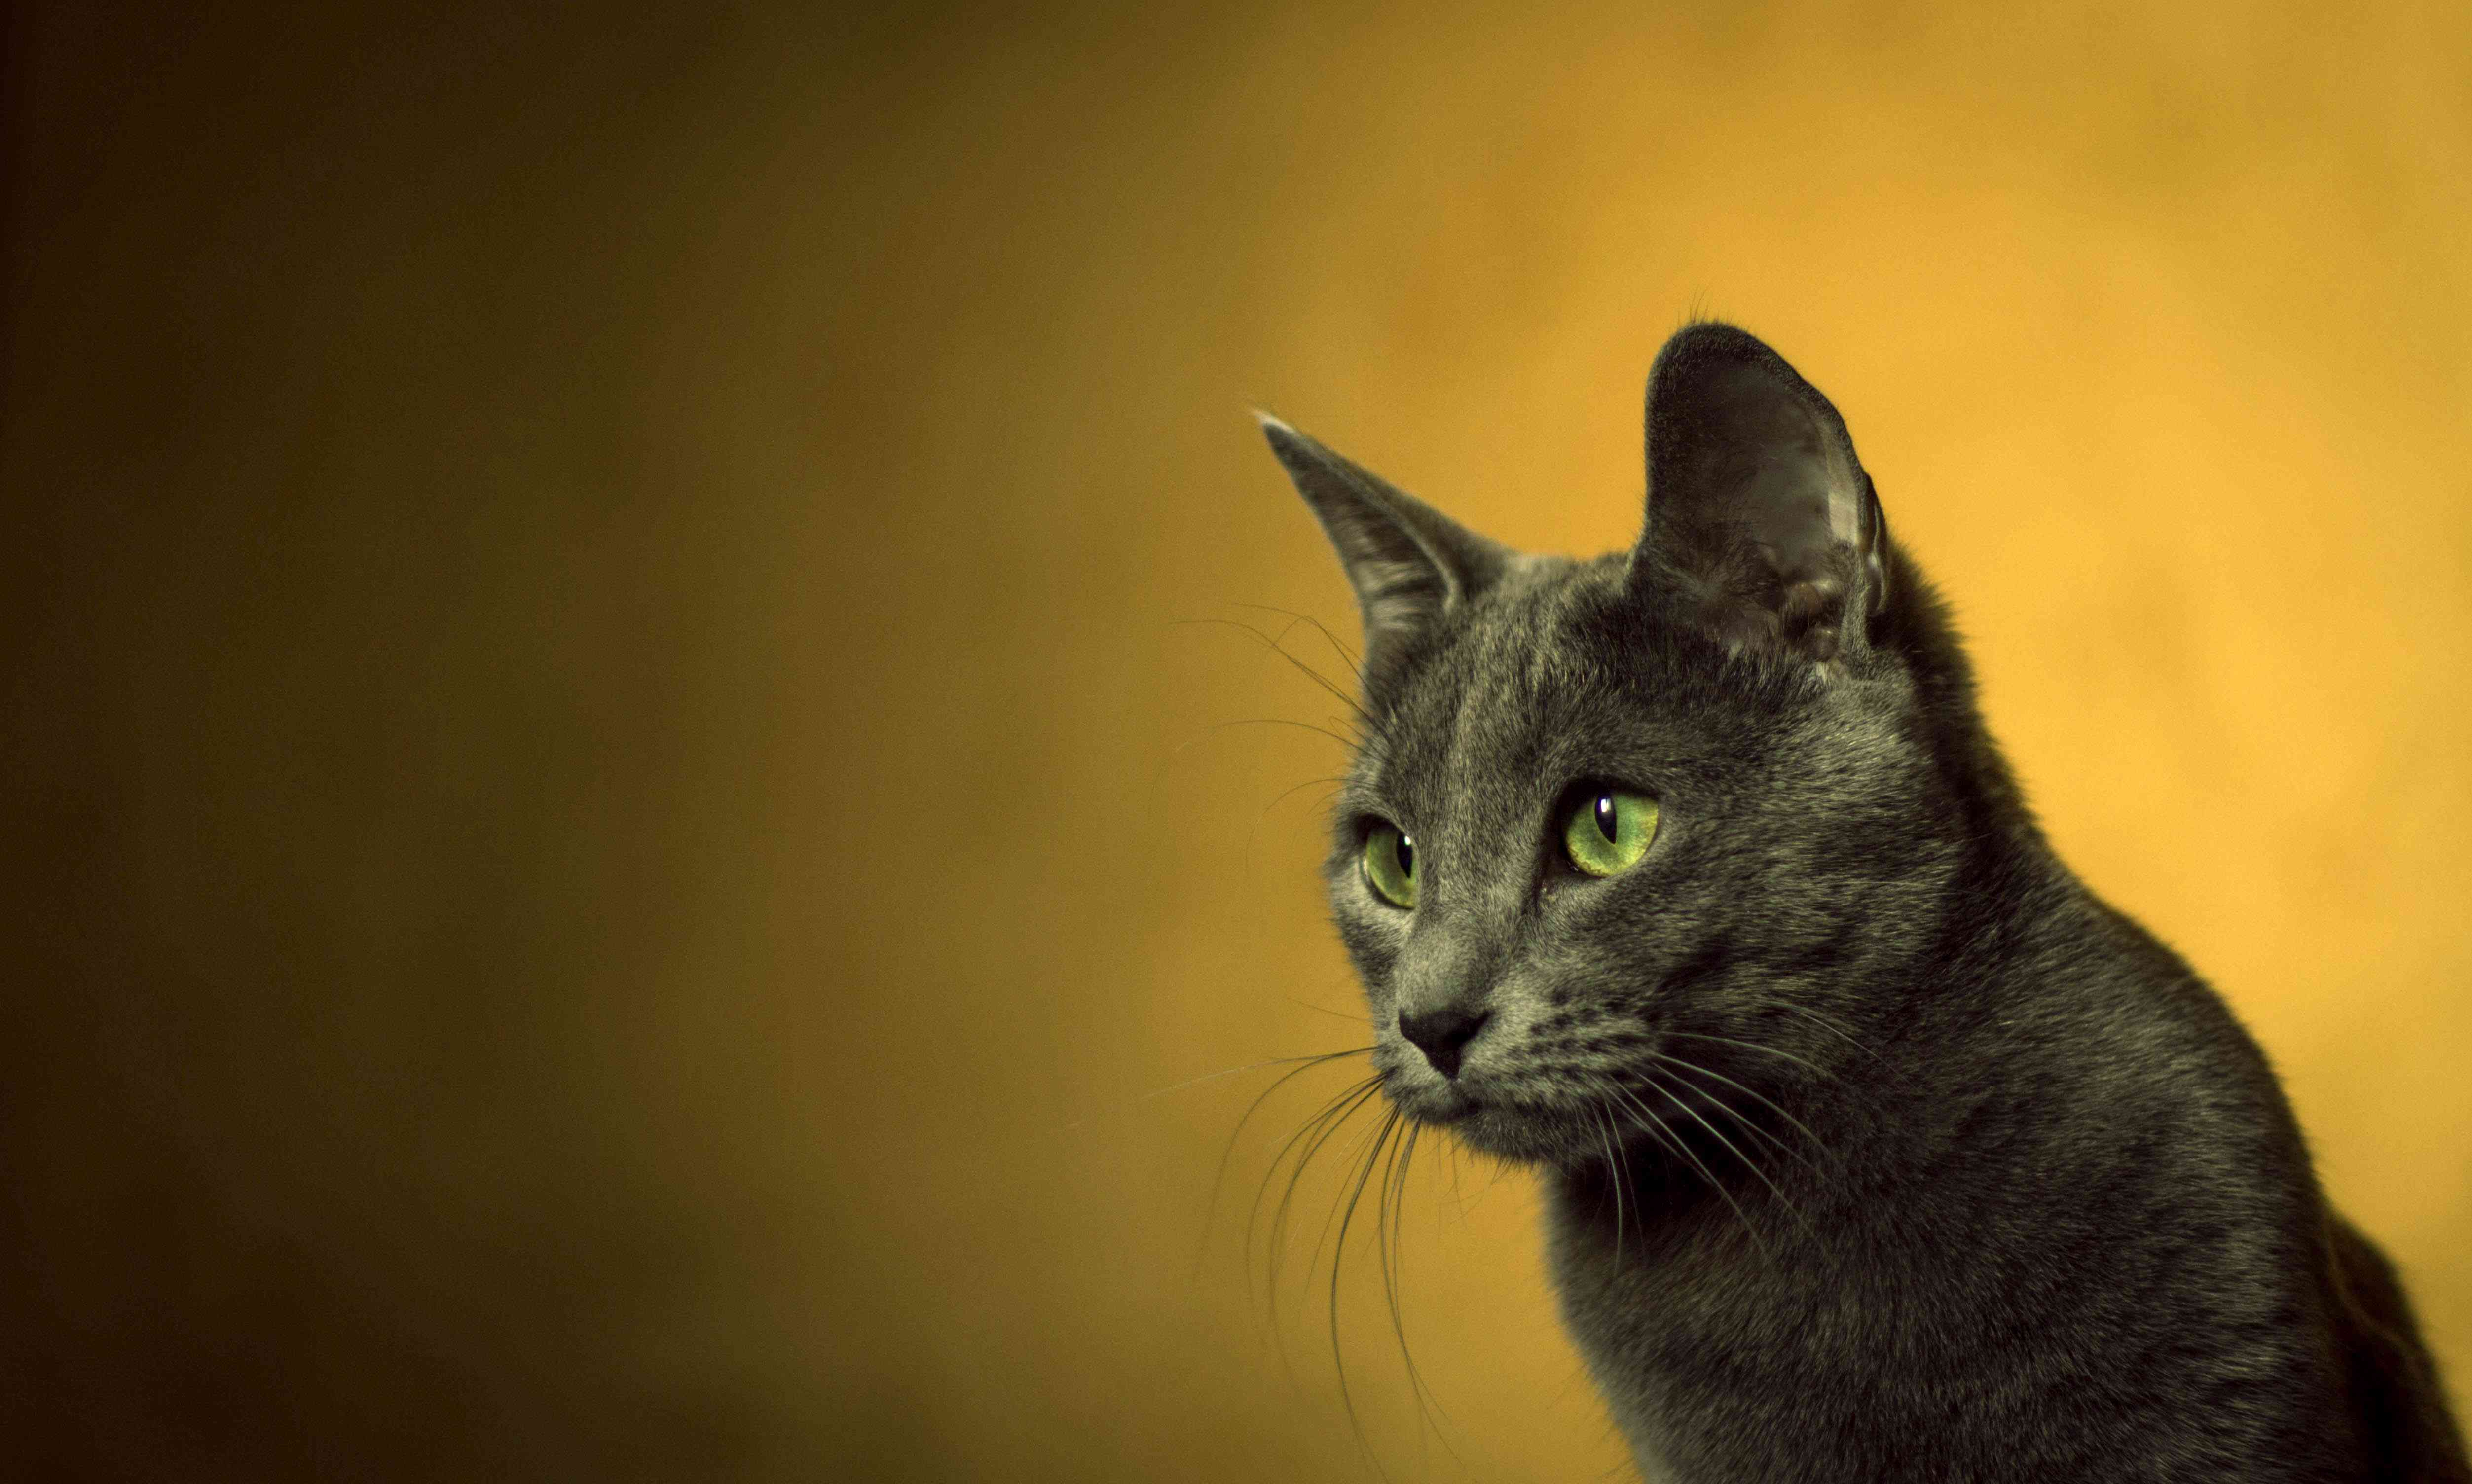 cat in front of a yellow background